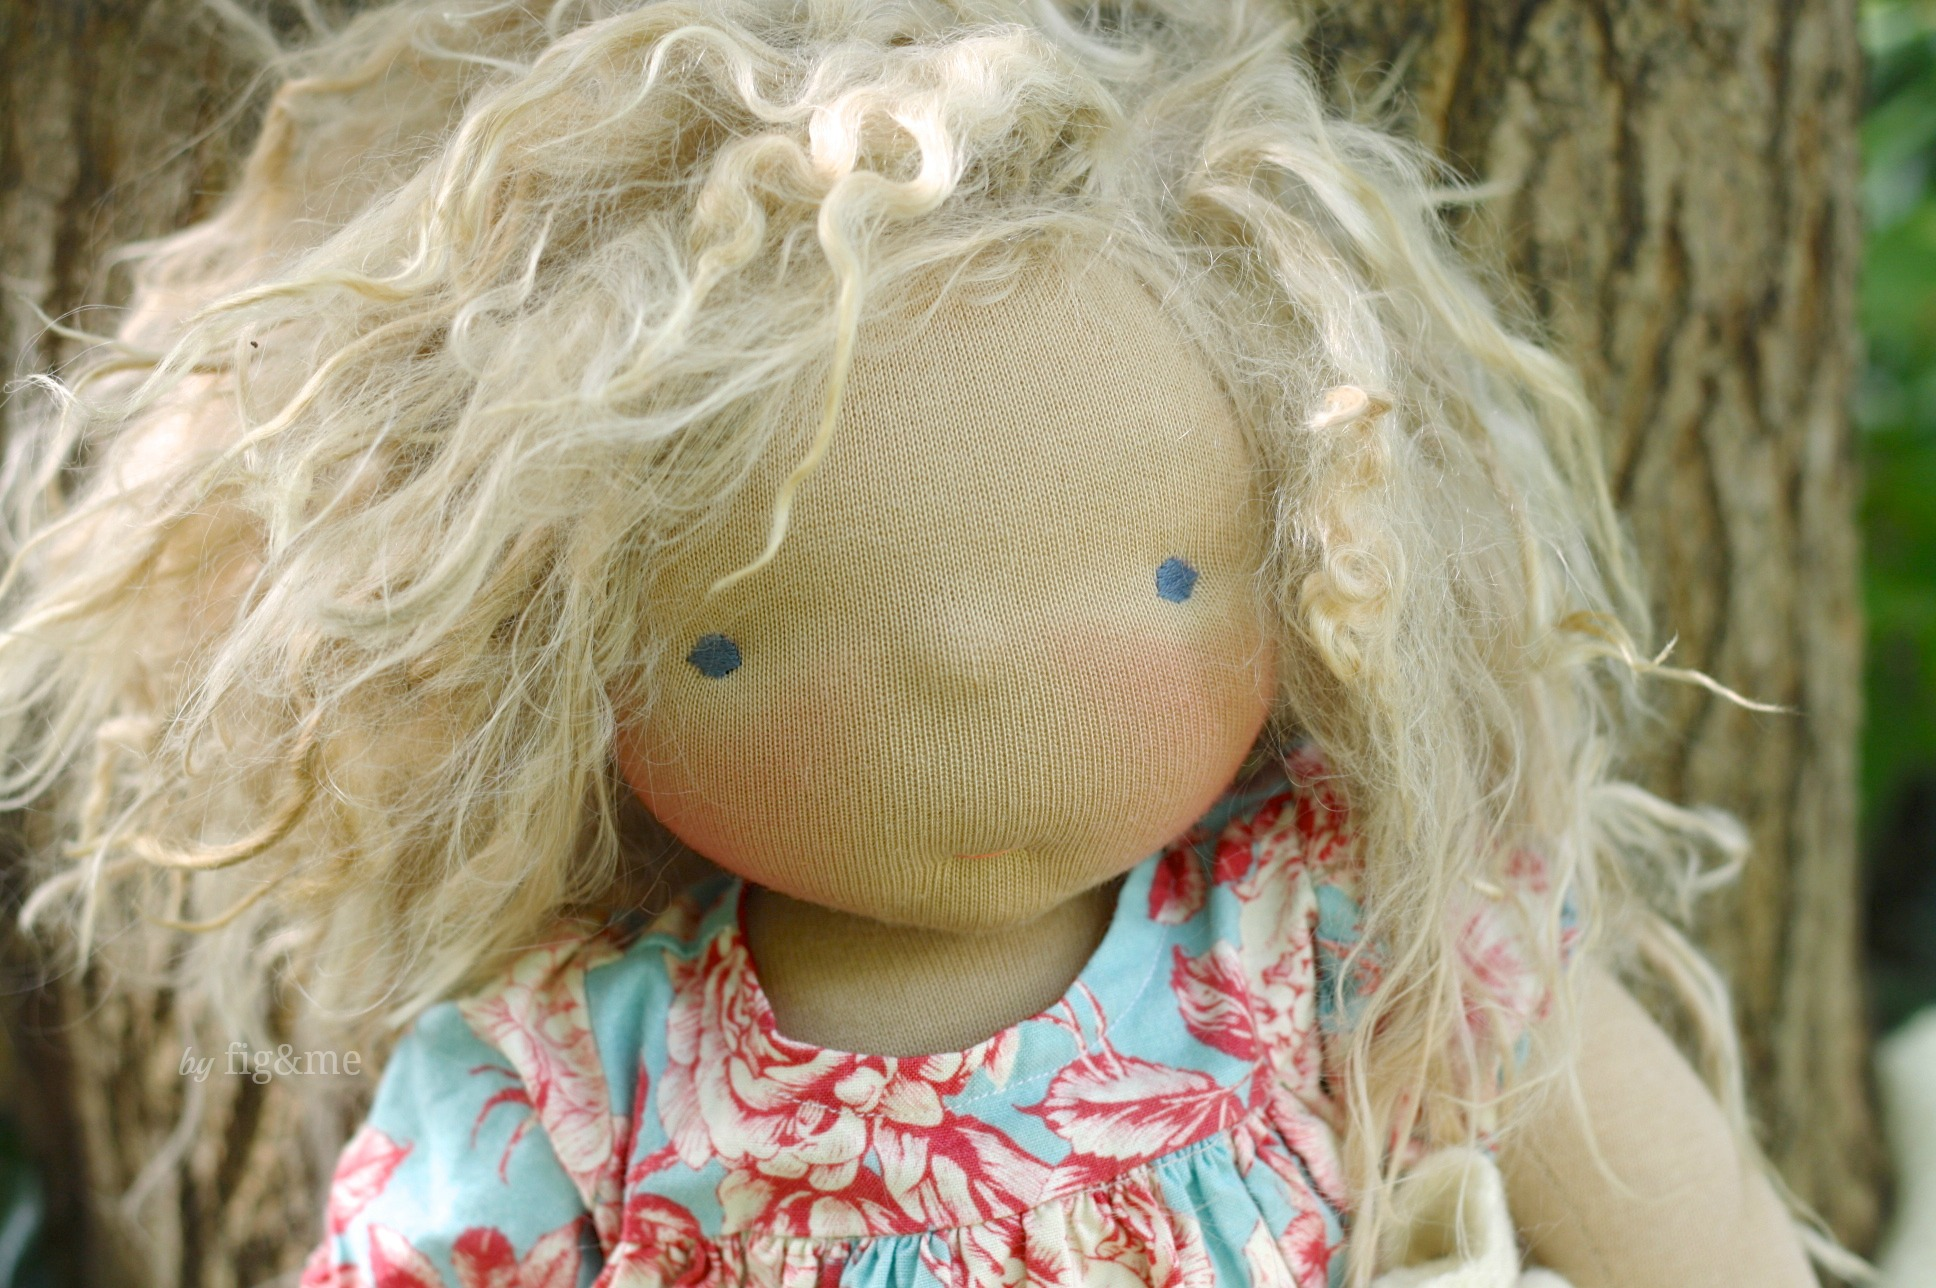 Amelie, with her alpaca locks by Fig and me.